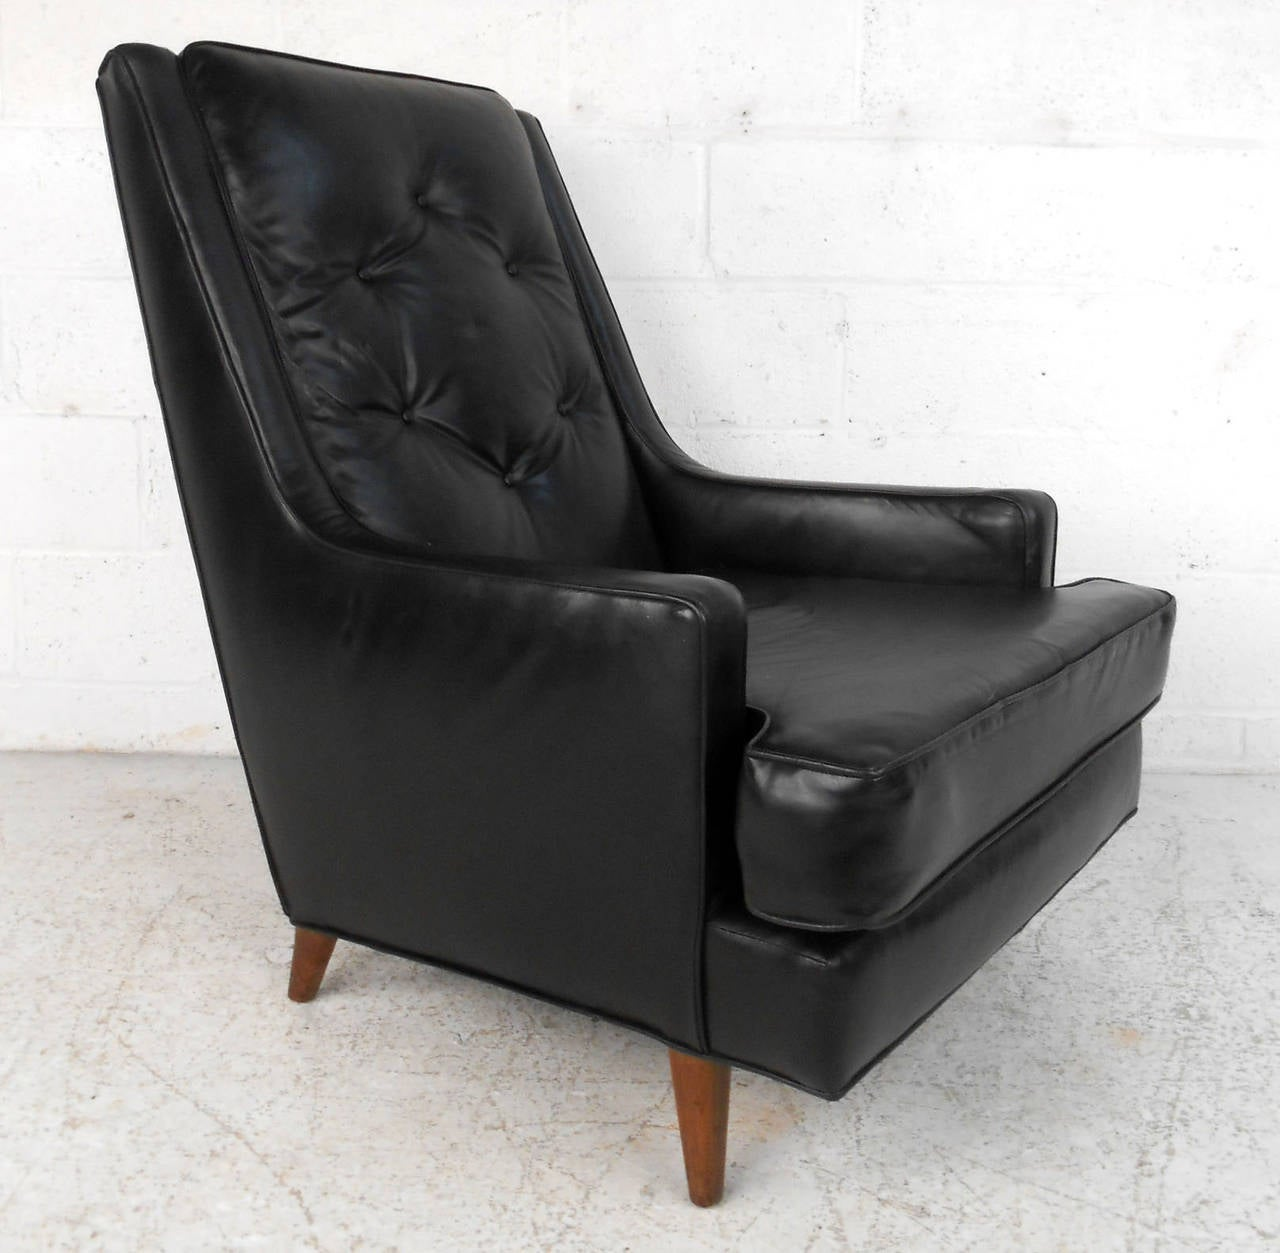 Mid Century Modern Tufted Lounge Chair With Ottoman For Sale at 1stdibs